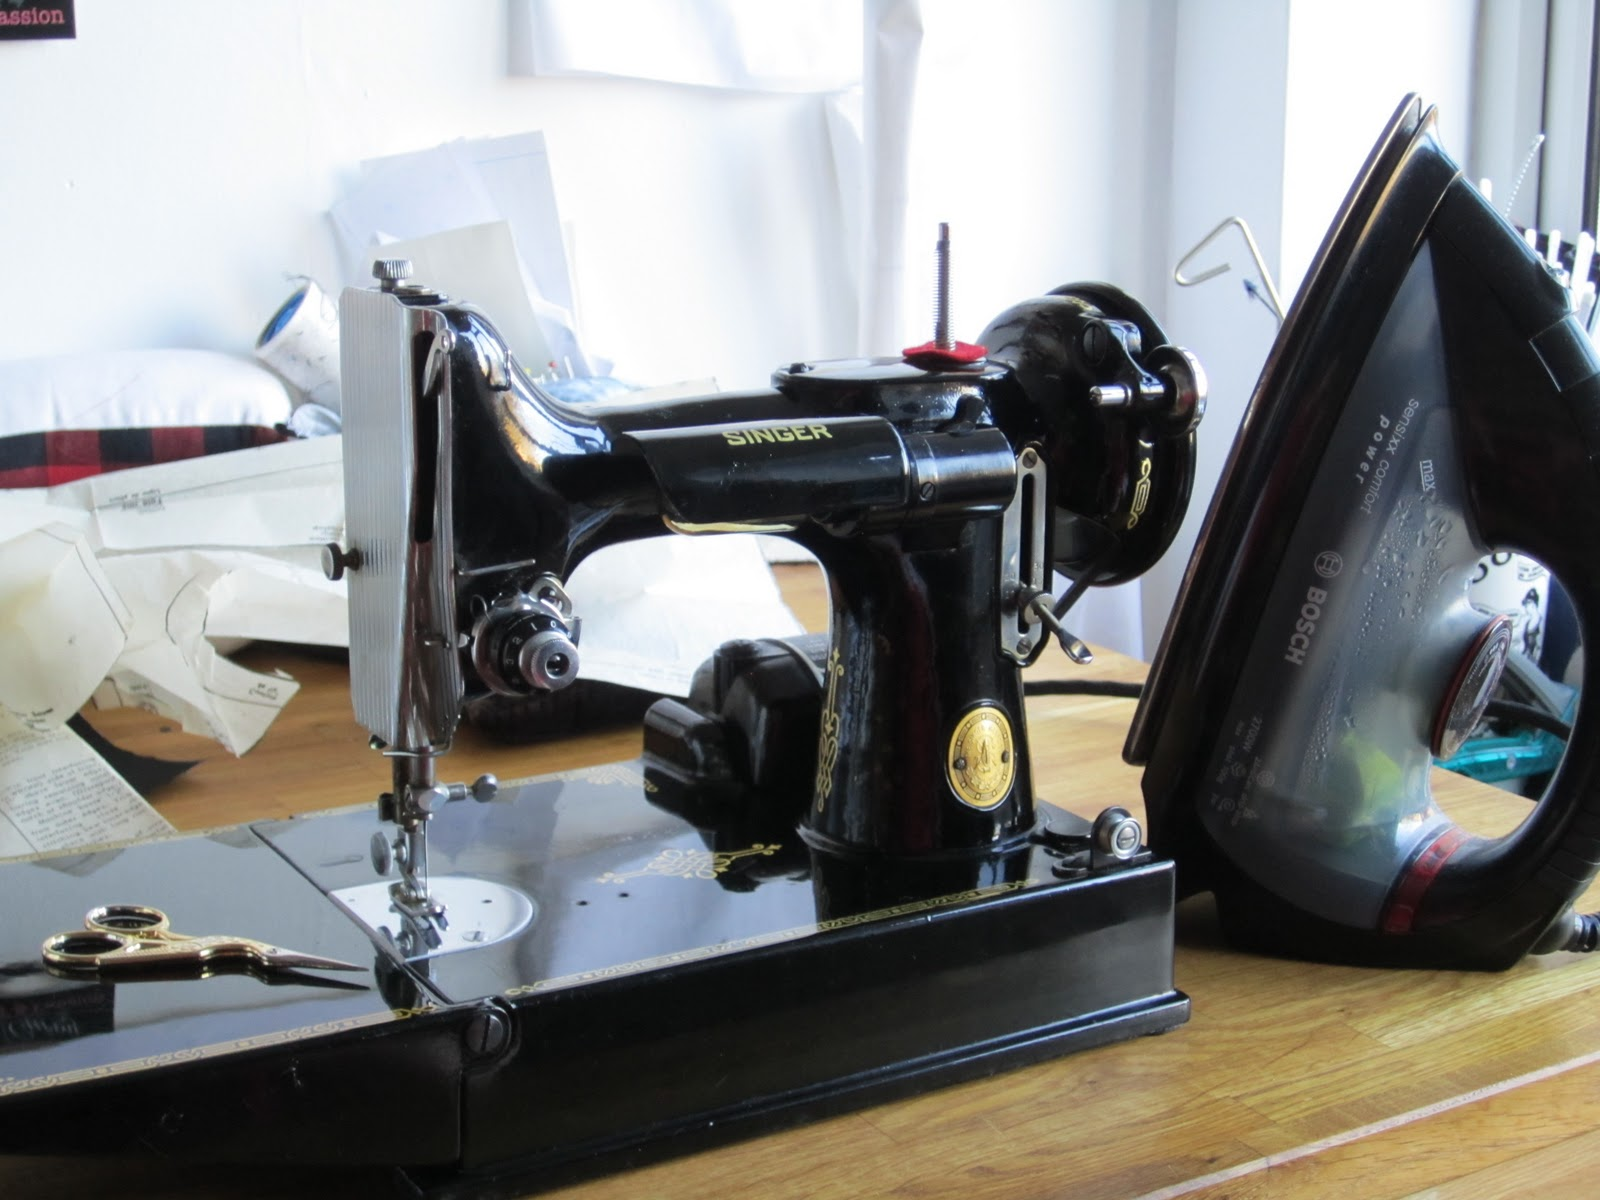 The Corset Channel My Vintage Sewing Machines Singer 221 K Machine Threading Diagram Compact And Bijoux Are Words For Little 221k Featherweight She Came With Handwritten Notes By Her Previous Owner